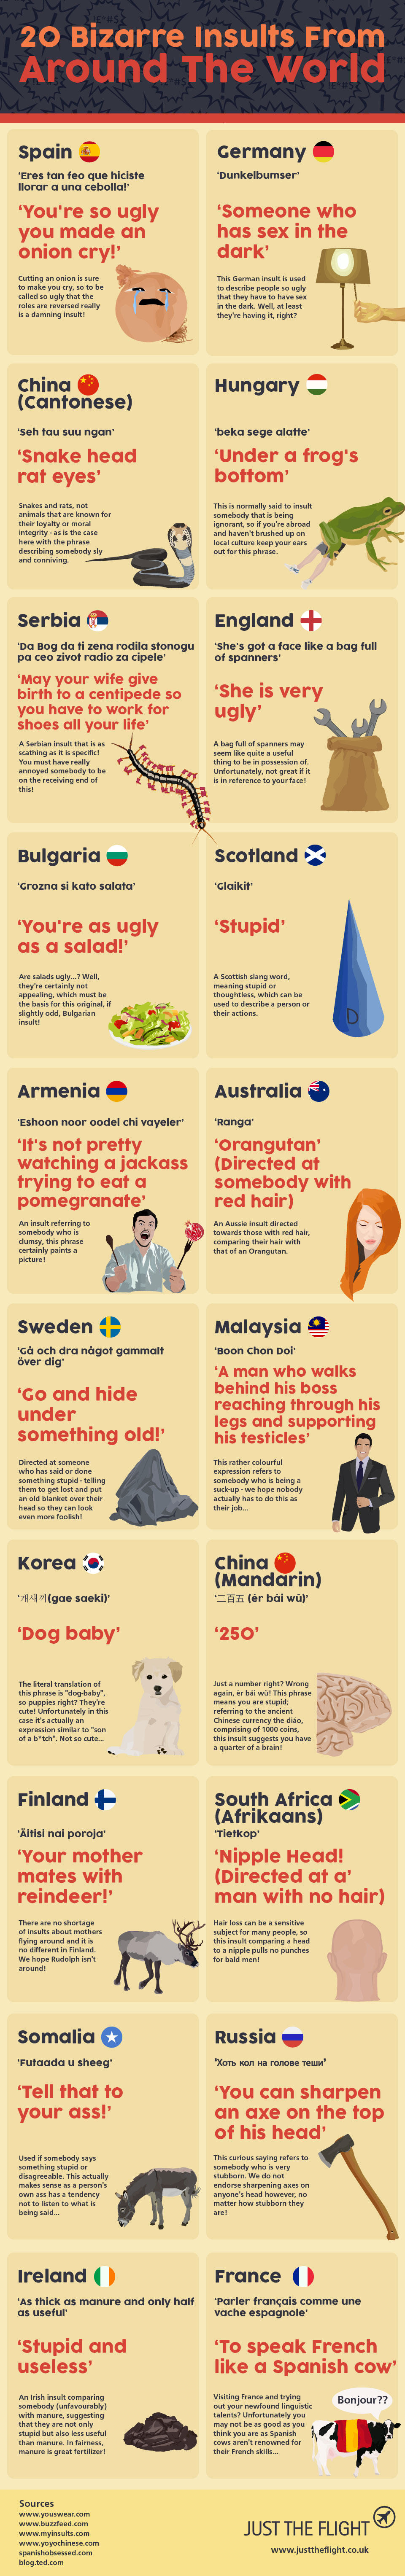 Here Are Some Of The Strangest Insults From Around The World insults